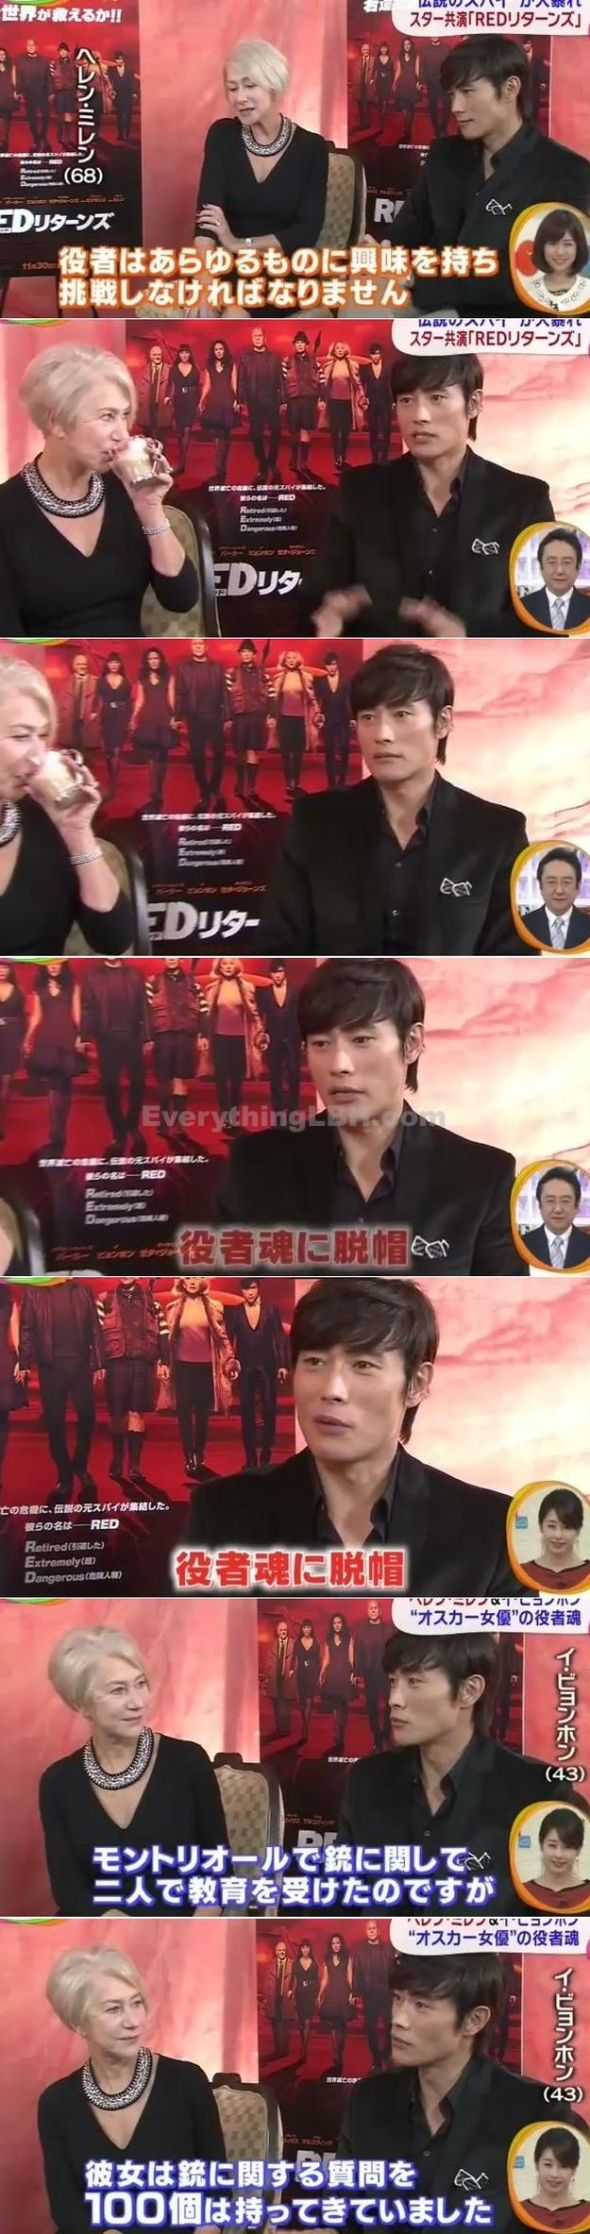 2013.11.26_tv interview1a